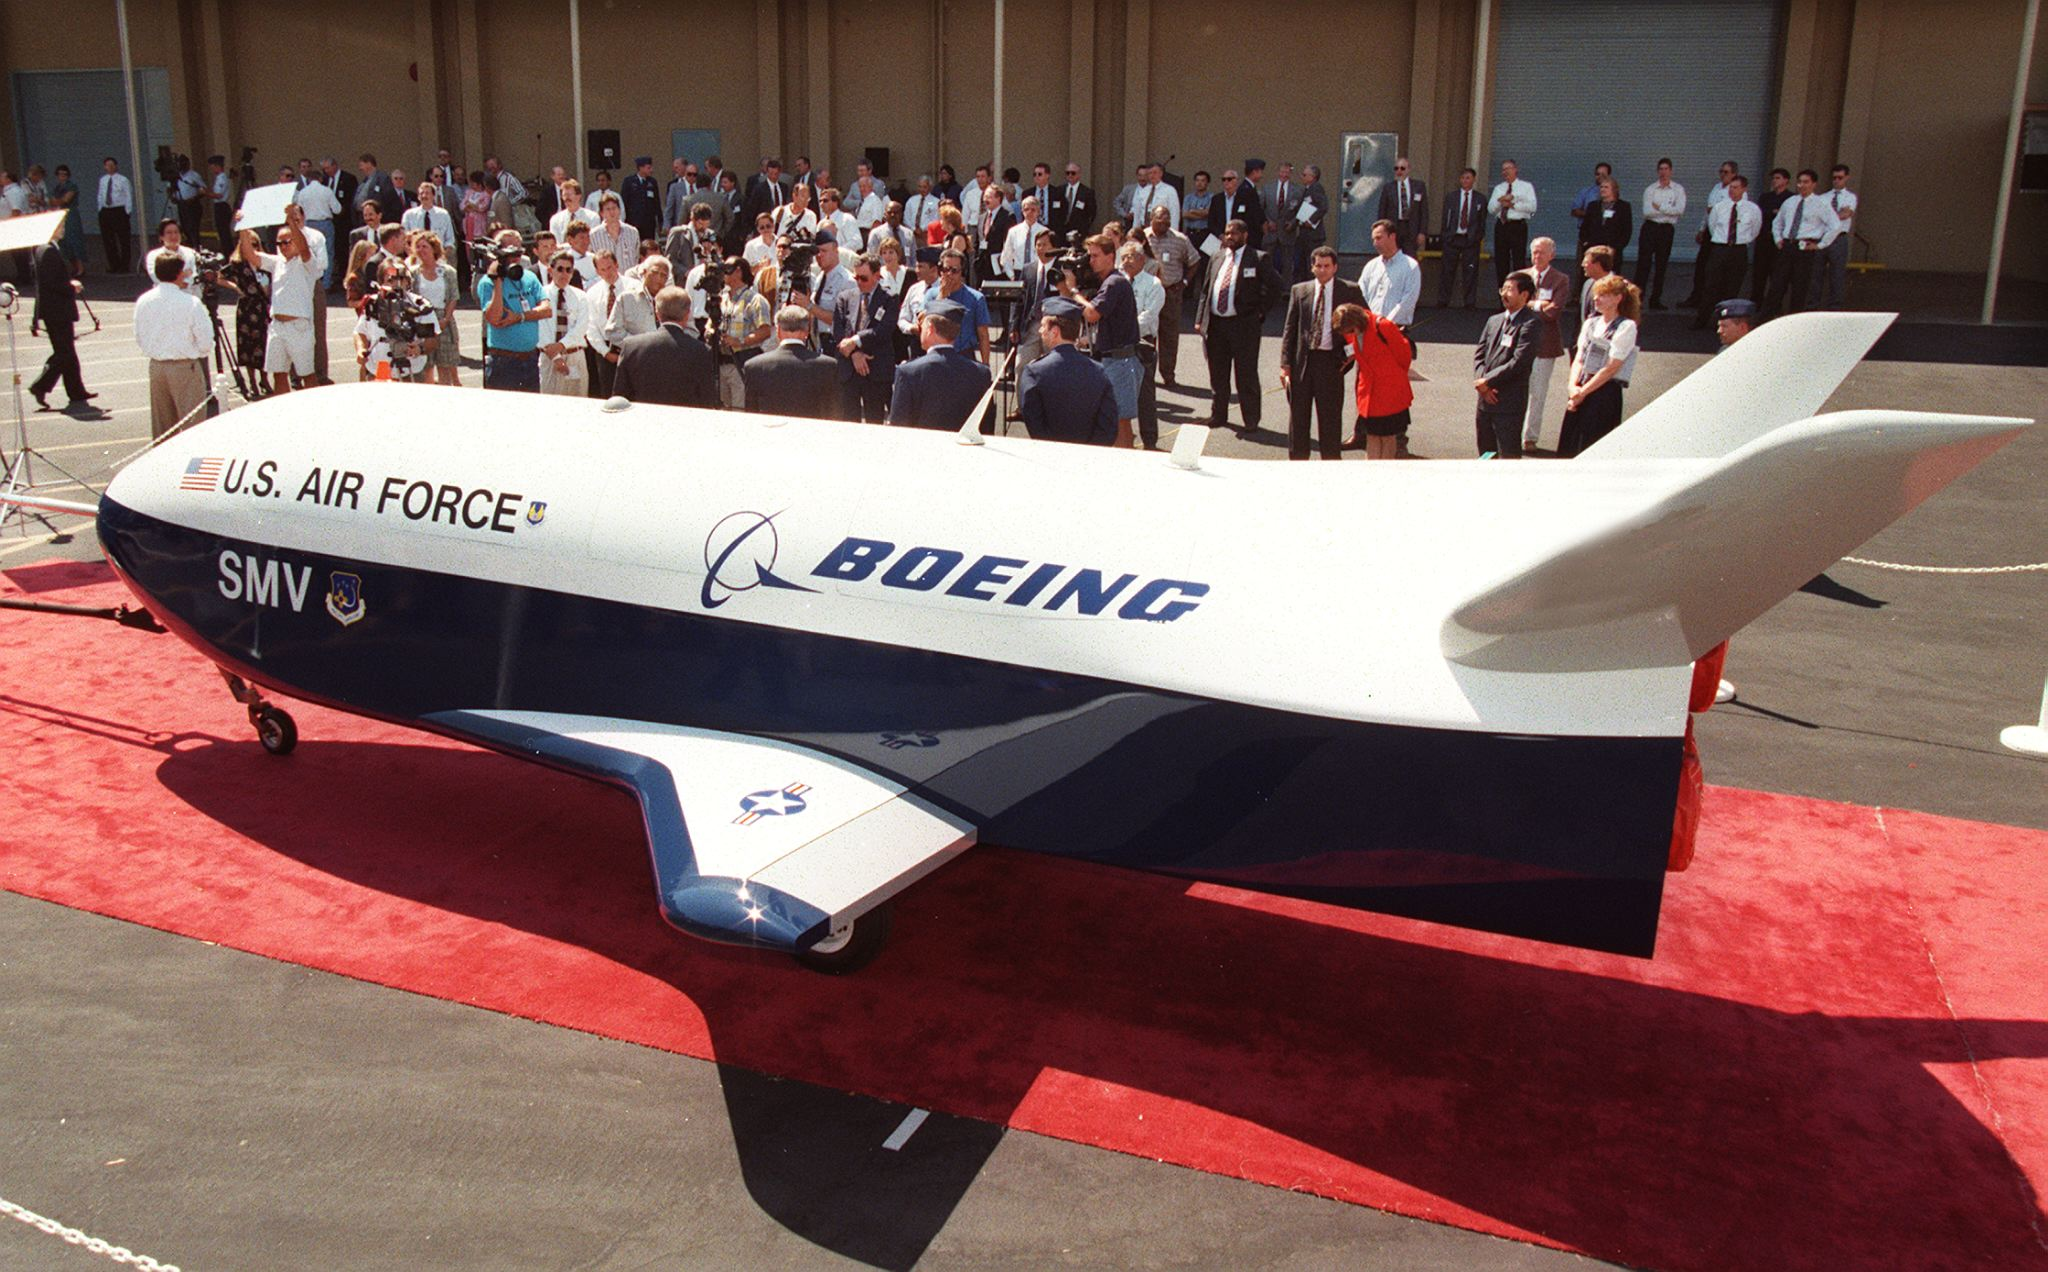 SEAL BEACH, UNITED STATES: A prototype of a Space Maneuver Vehicle (SMV), built by the US Air Force and Boeing, is rolled out during a ceremony at Boeing's facility in Seal Beach, CA, 03 September. The 22-foot long vehicle with a 12-foot wing span is a 90-percent scale version which will be flight tested and eventually used as part of the Air Force's Military Spaceplane program. The program will include this small, unpiloted, powered spacecraft to be used as reusable satellite for missions such as tactical reconnaissance and space object identification and surveillance. AFP PHOTO Vince BUCCI